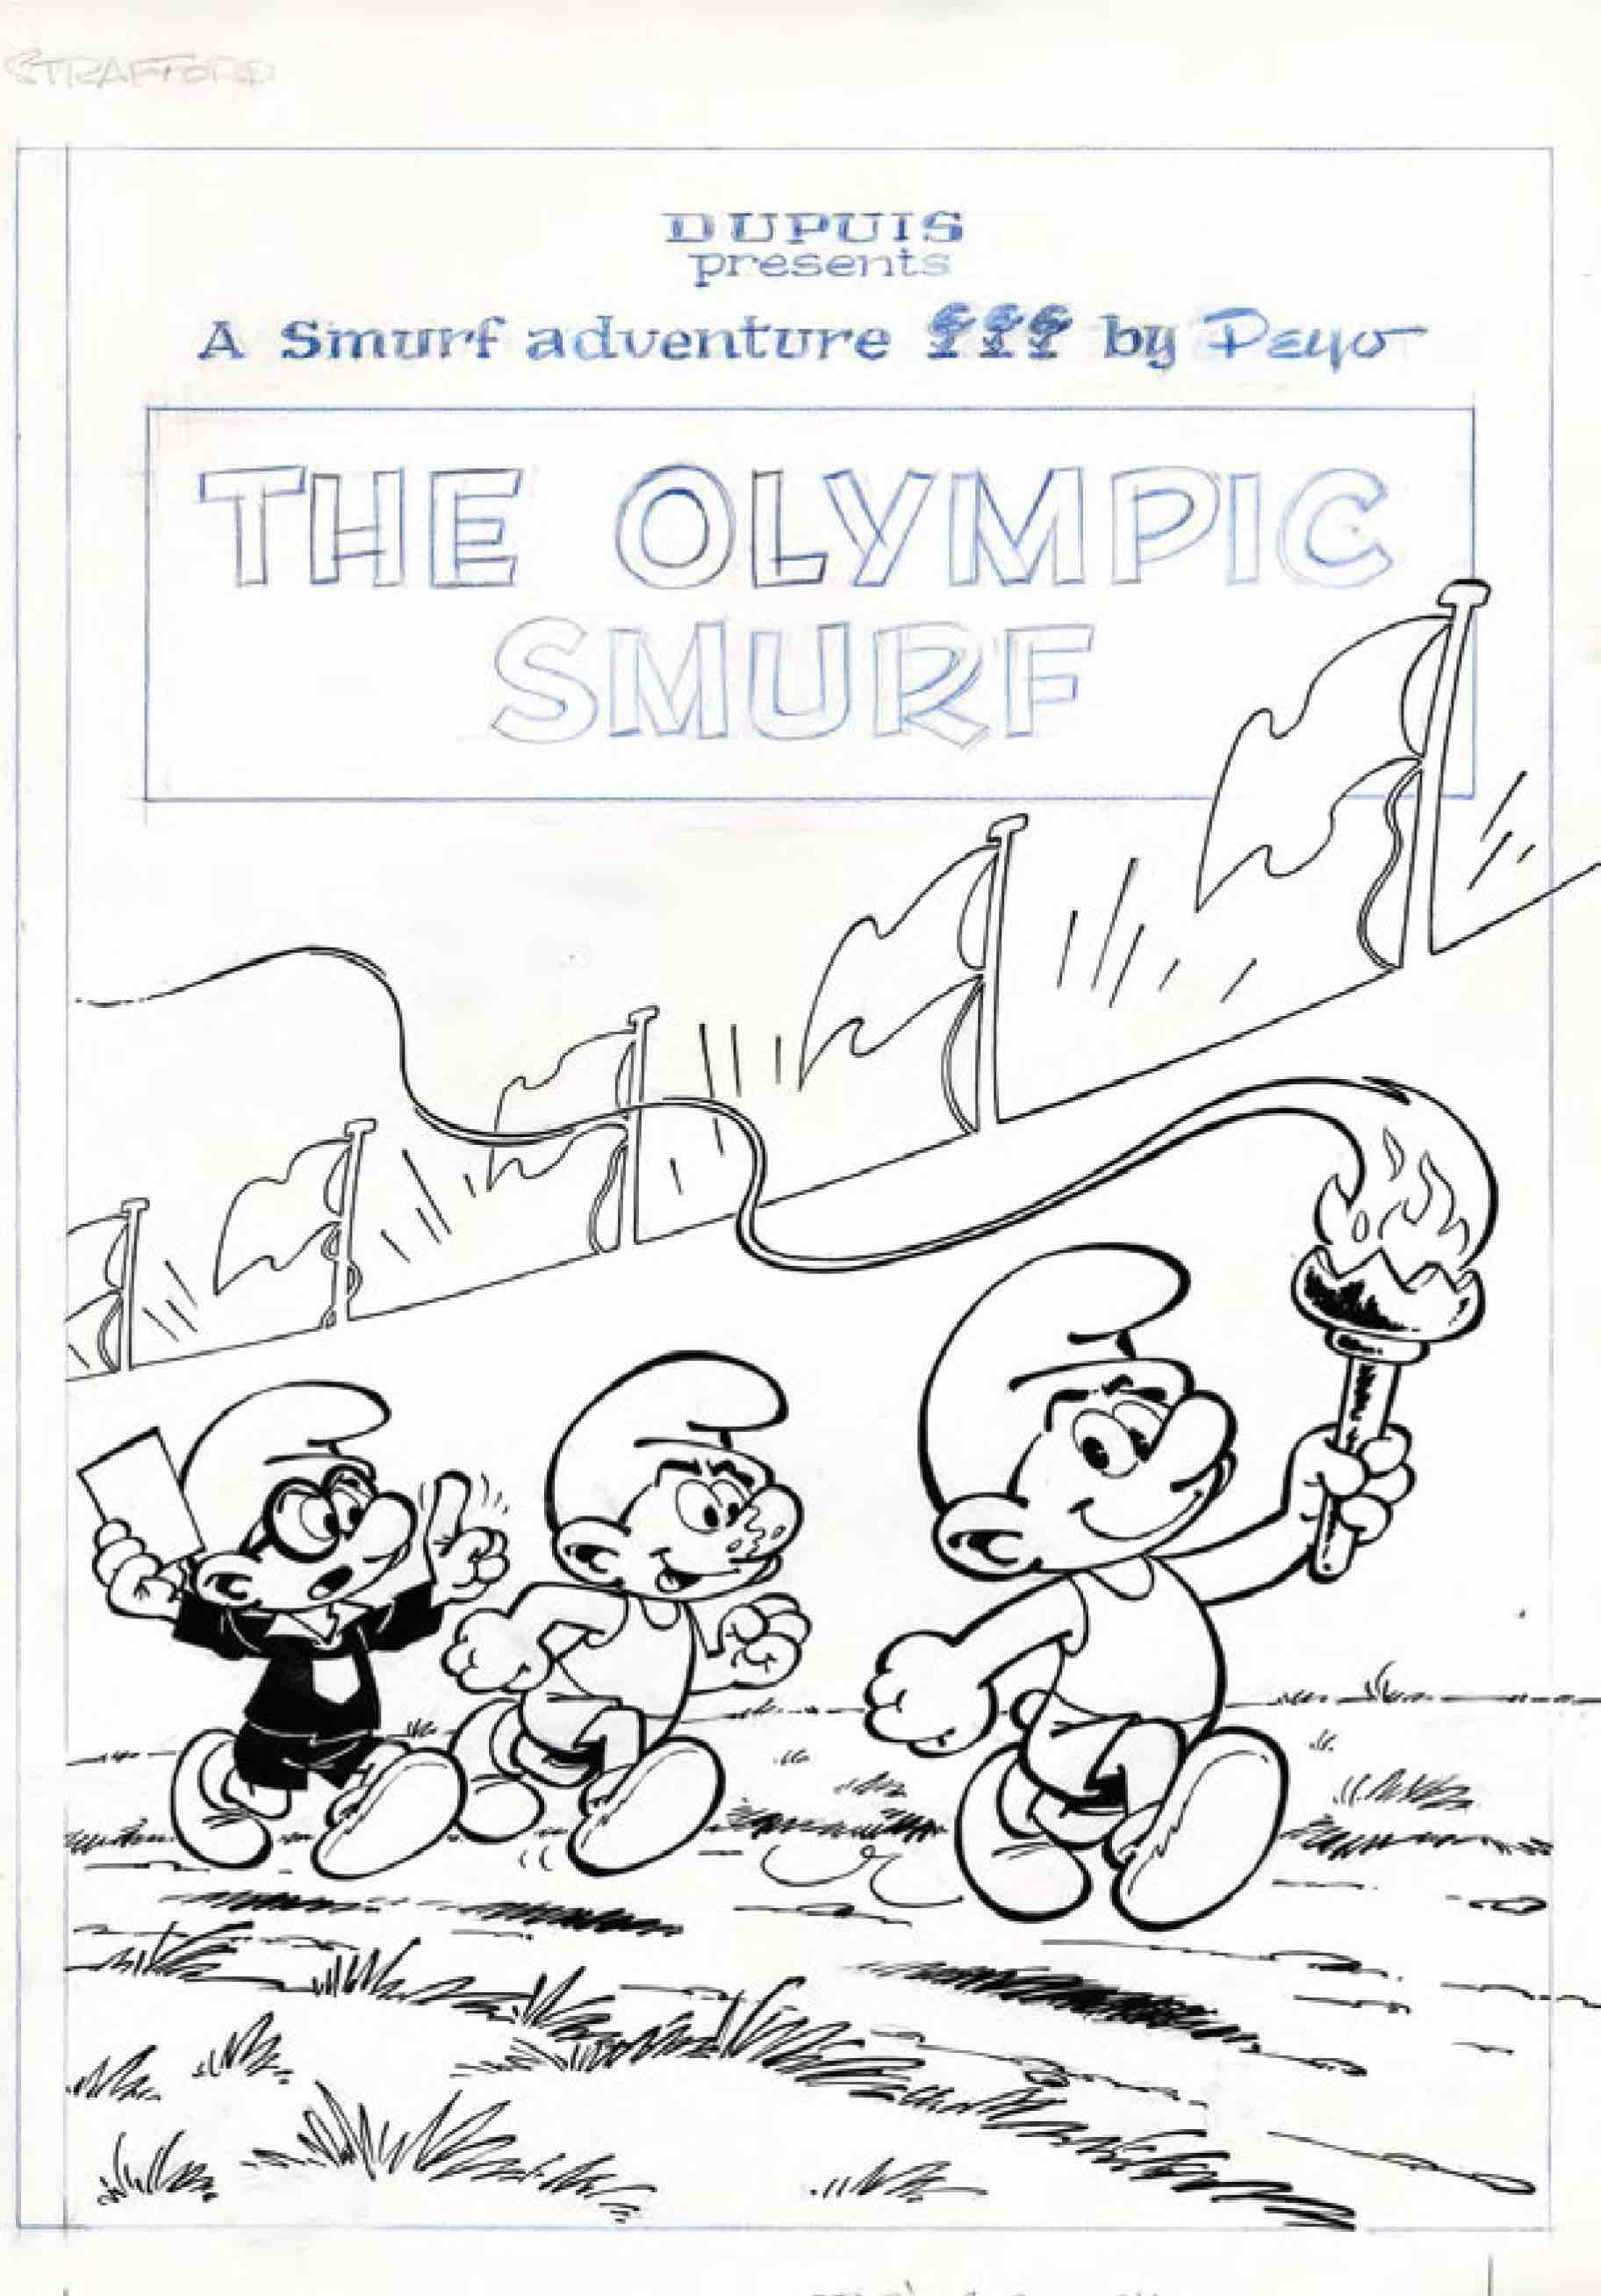 Original Works Of Peyo Smurfs - AspirantSG